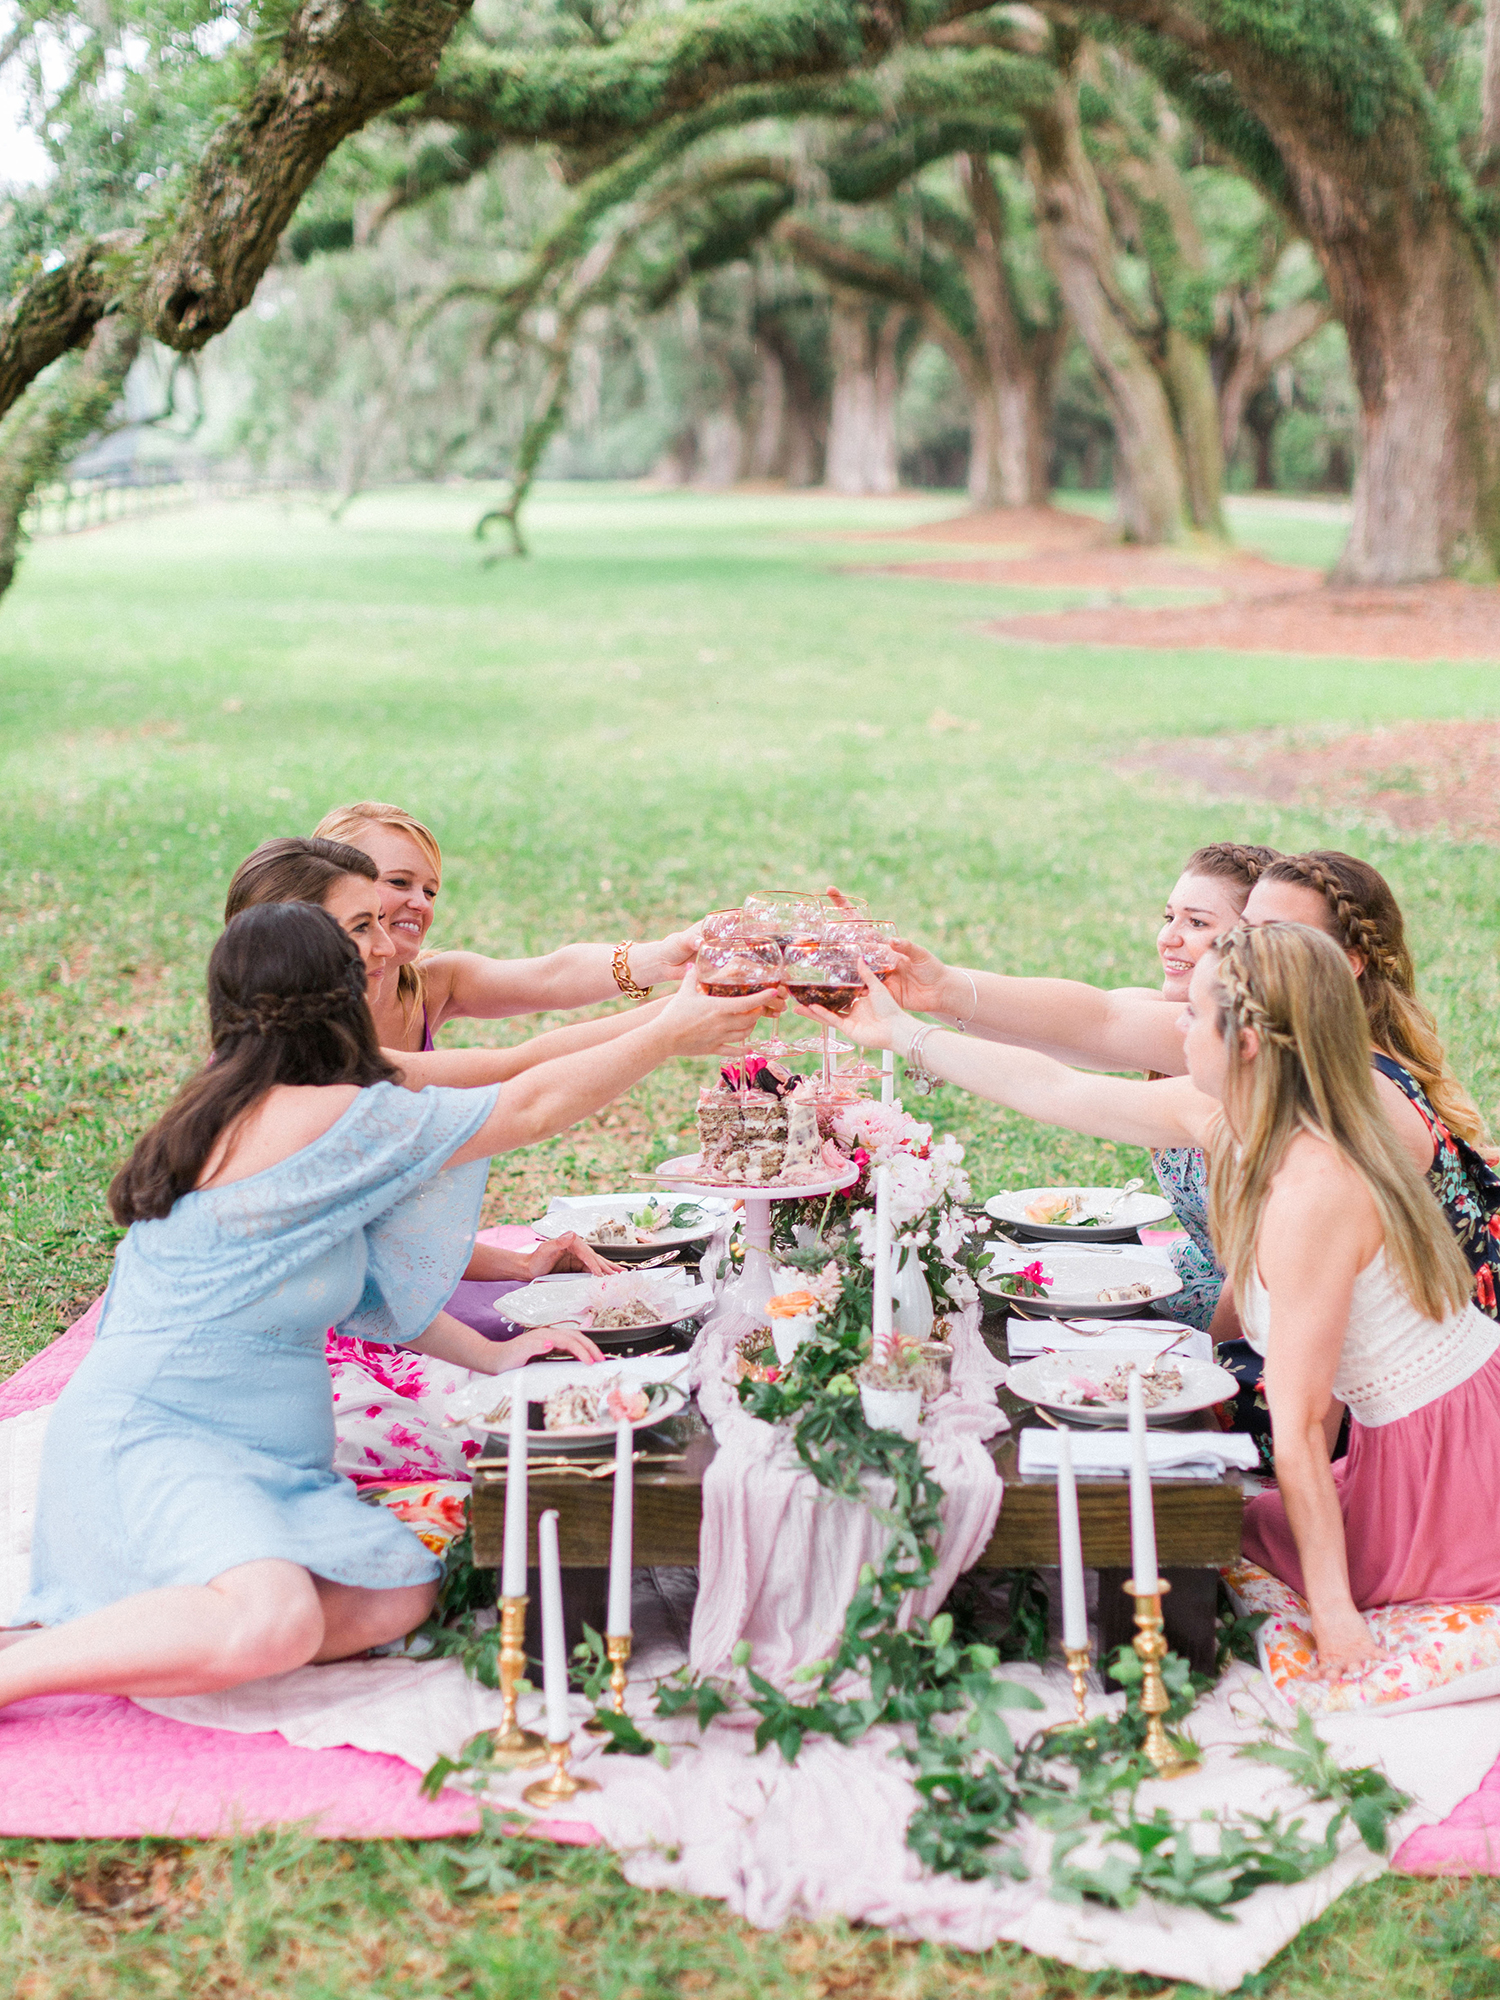 Fun Ideas for Your Fall Bachelorette Party